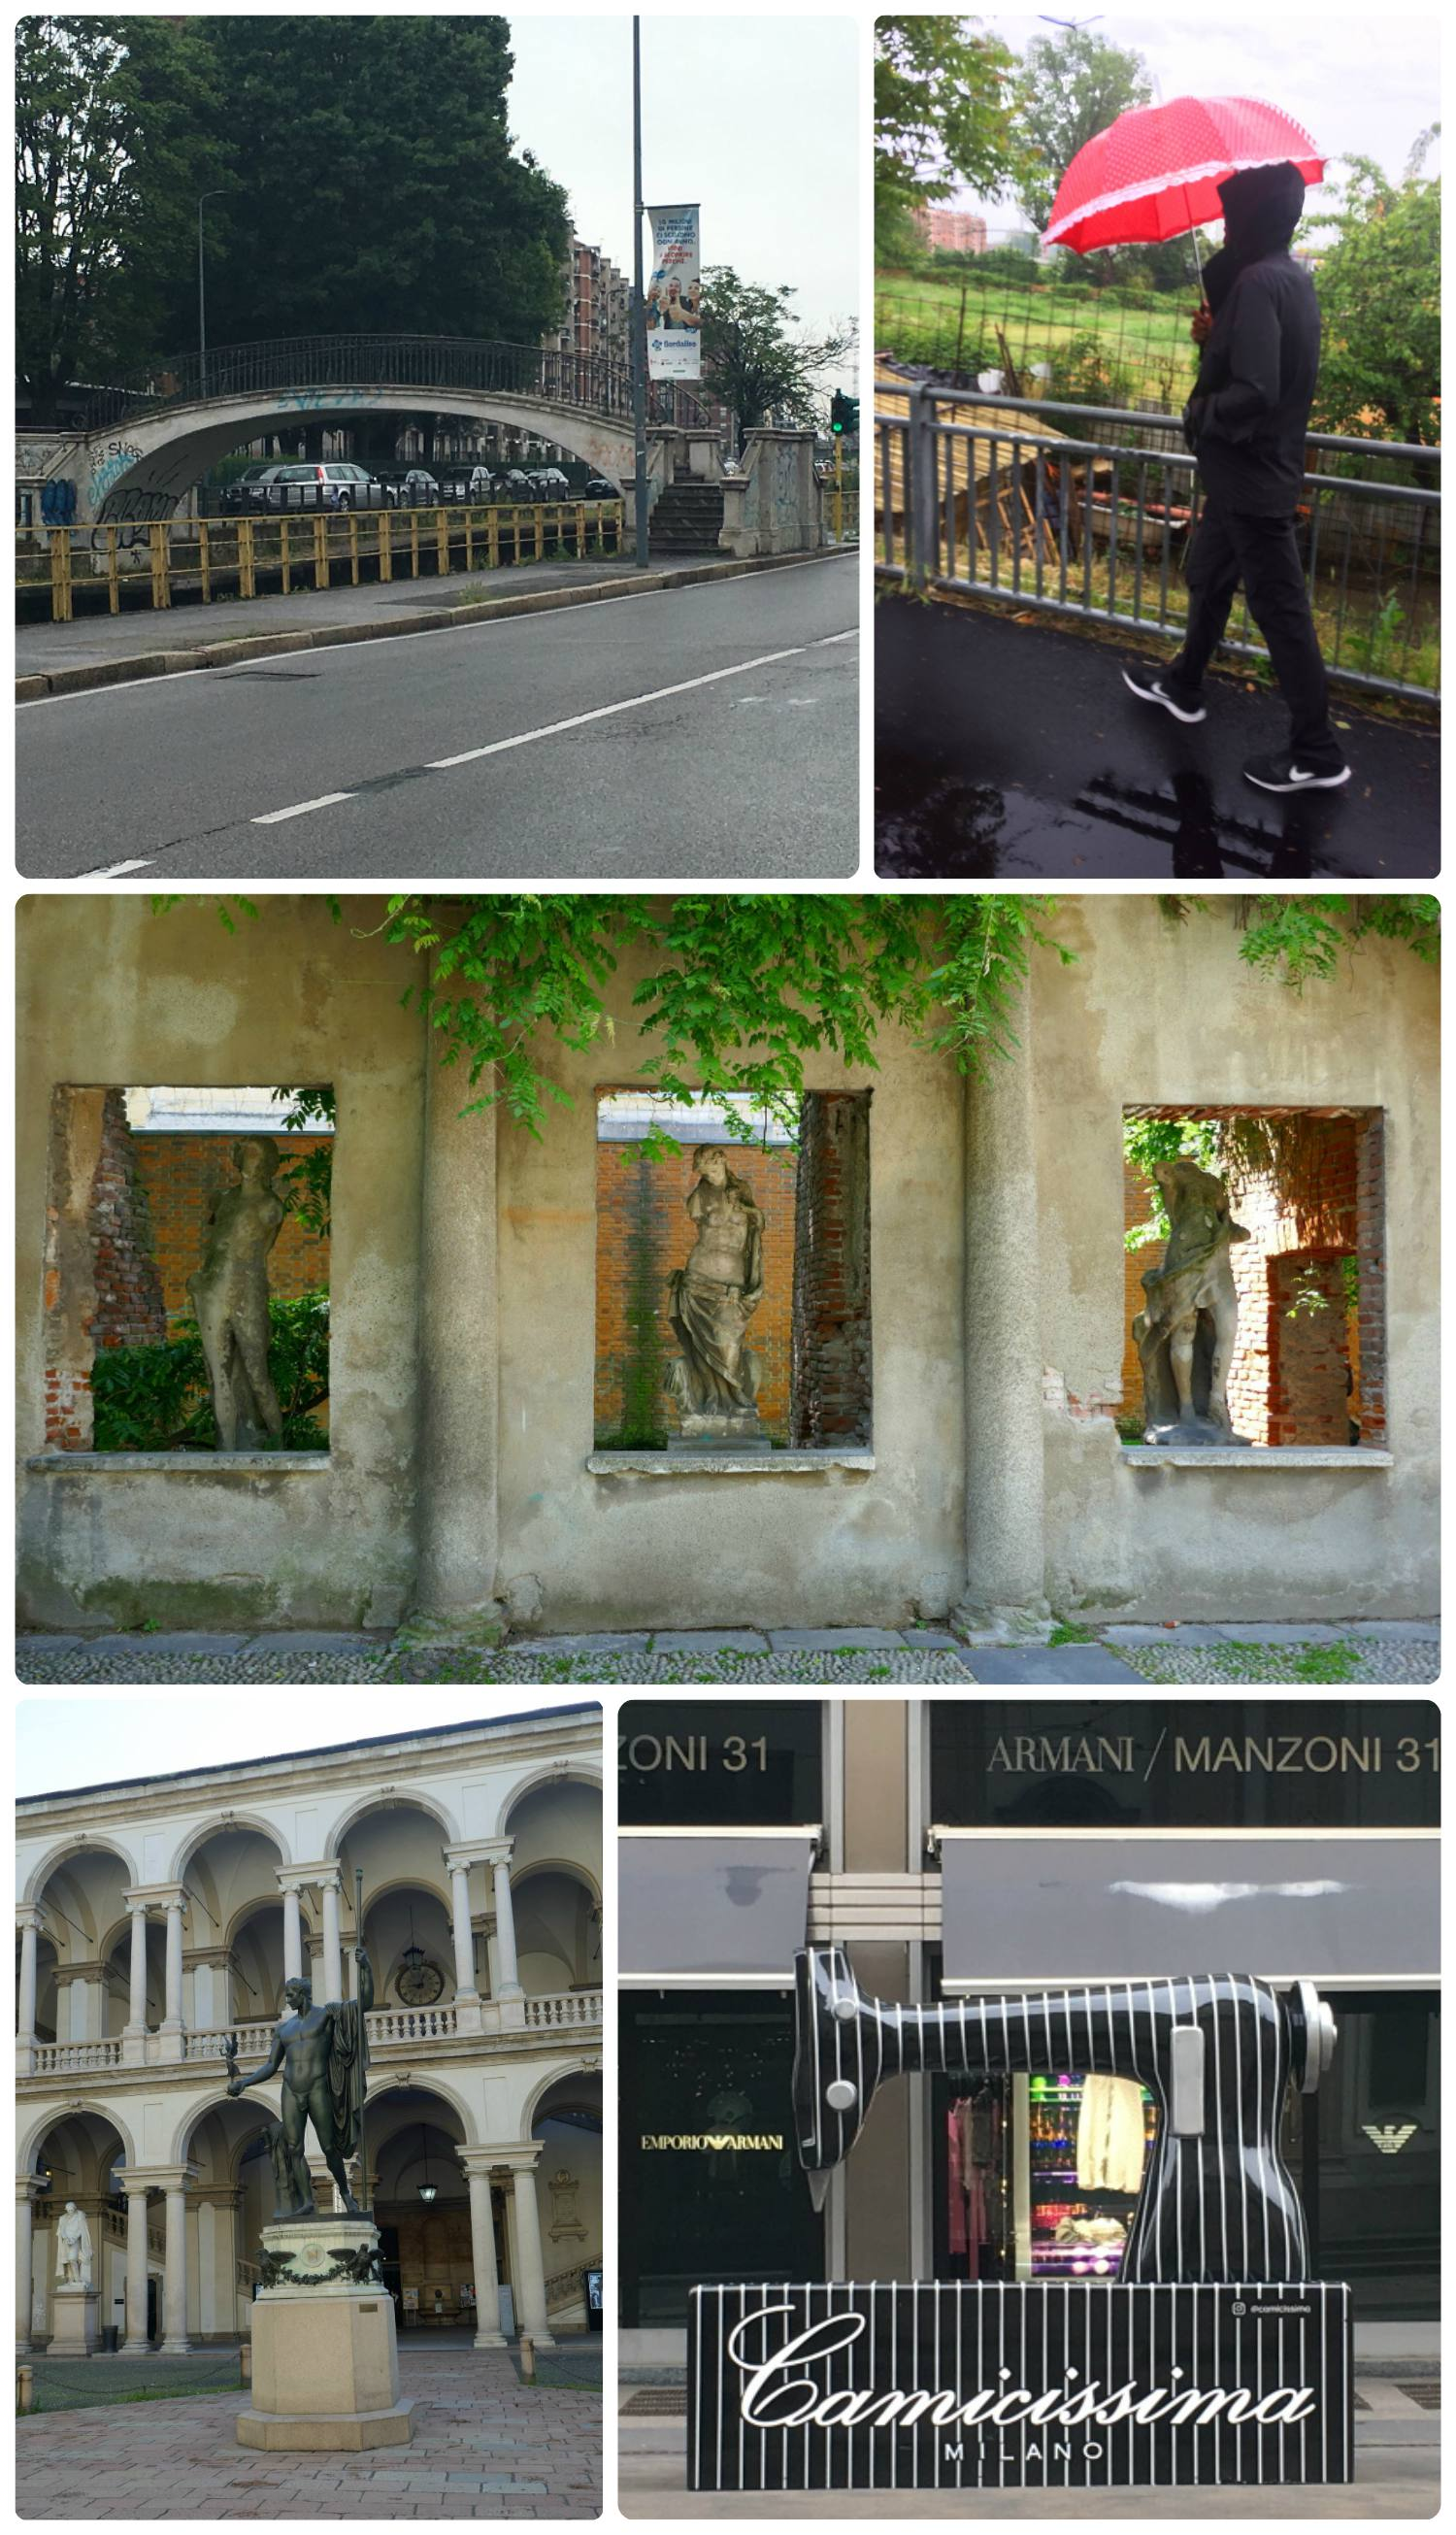 Some of the things we saw on our adventures walking around Milan. Clockwise (from the top): A bridge over one of the canals in Milan that legend says was designed in part by Leonardo da Vinci, Sergio walking in the rain with a borrowed umbrella (yes, with hearts and frills!), statues in the Casa Dei Corii Park, Camicissima sewing machine on the street, courtyard of Pinacoteca di Brera.